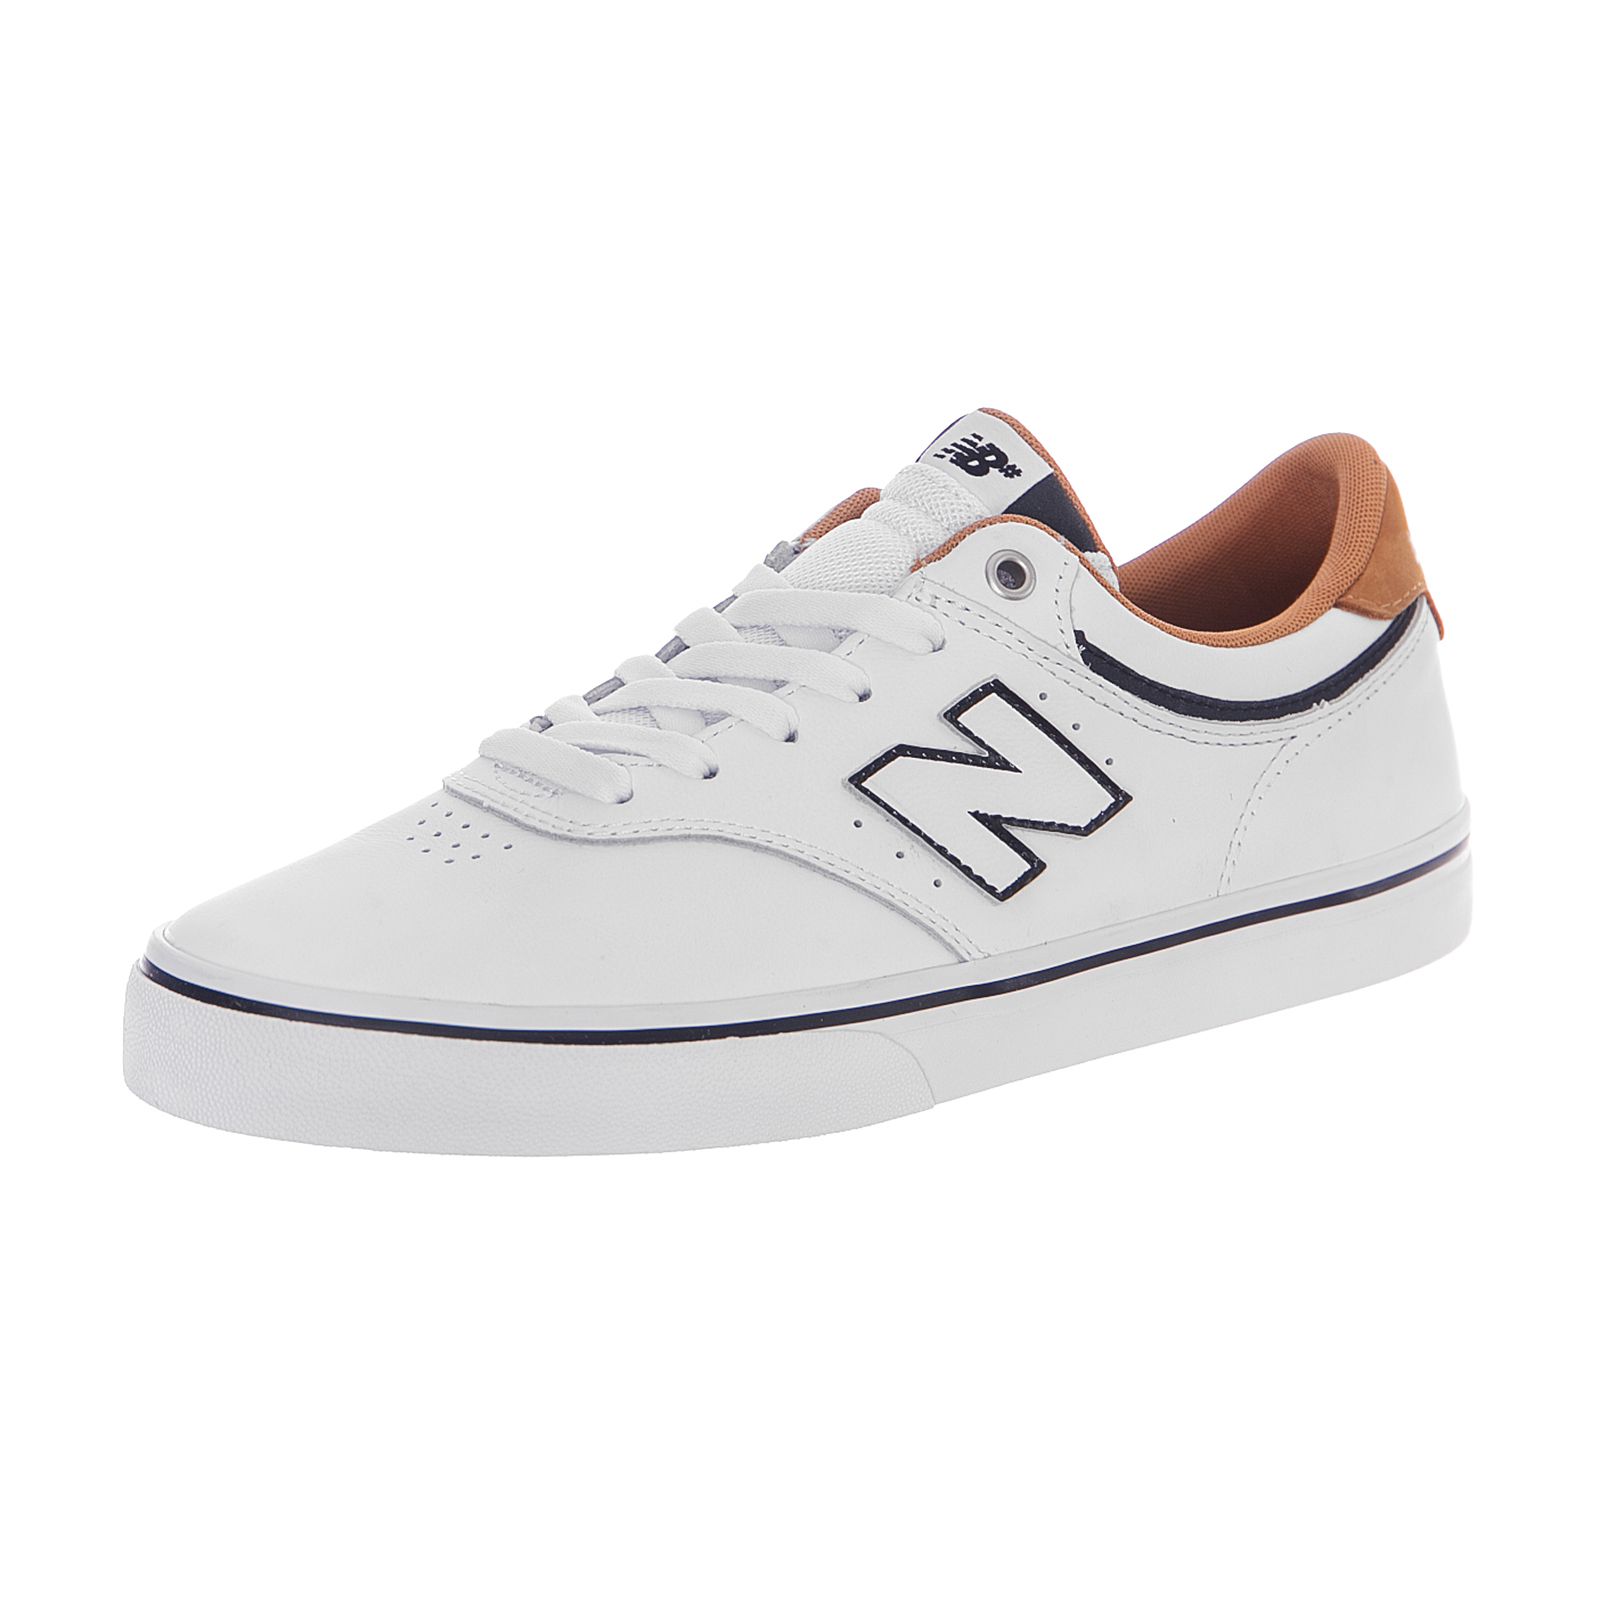 New White/Blue Balance Sneakers Numeric Skateboarding White/Blue New Suede/Leather D White 07fbeb